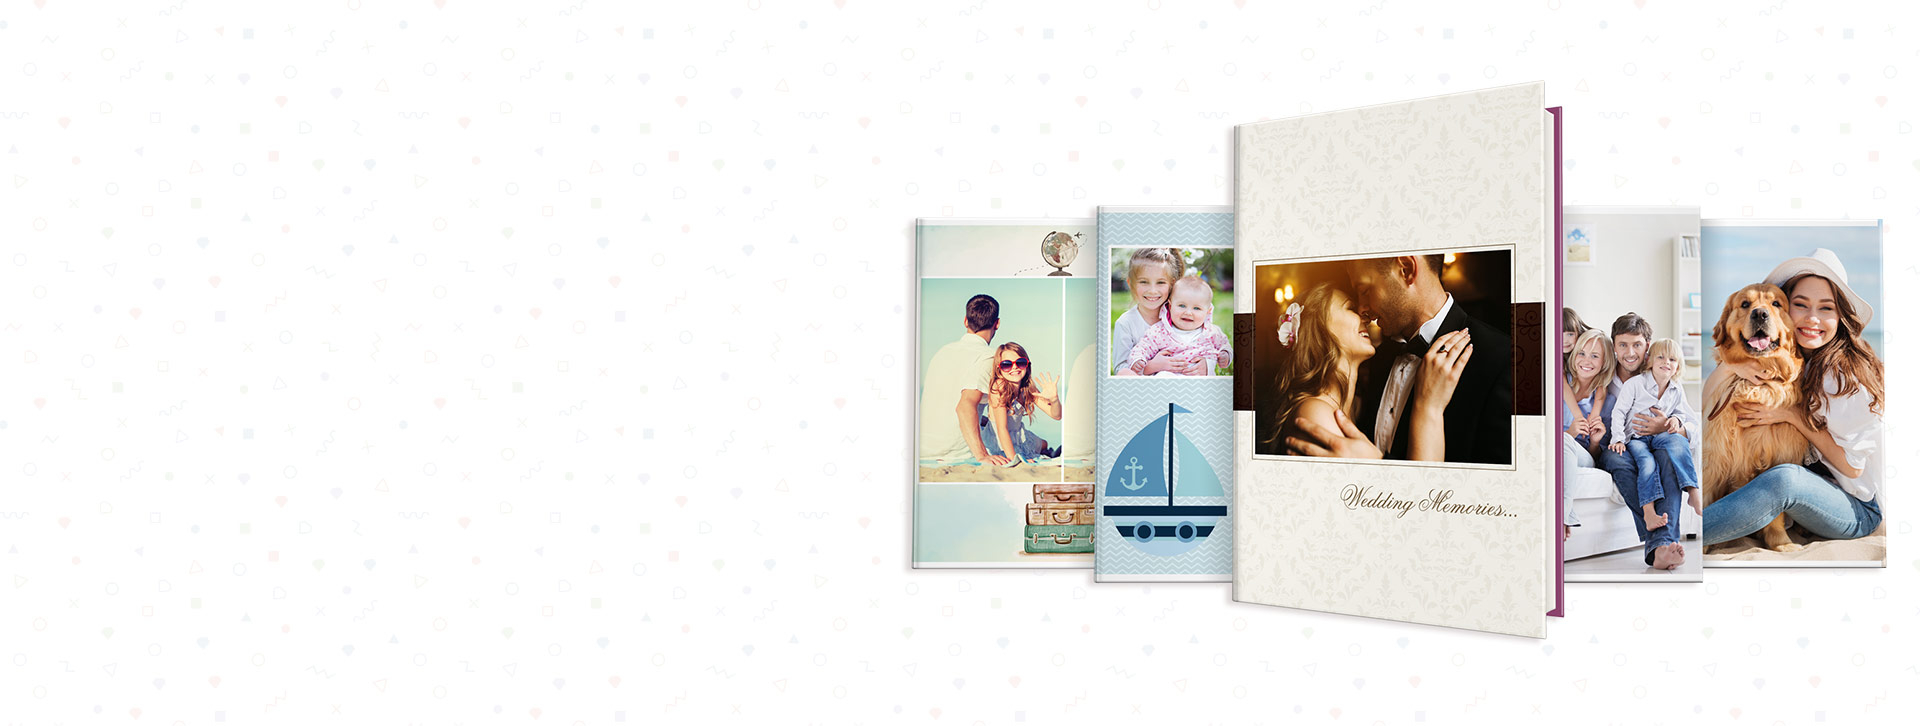 weeding memories photo book